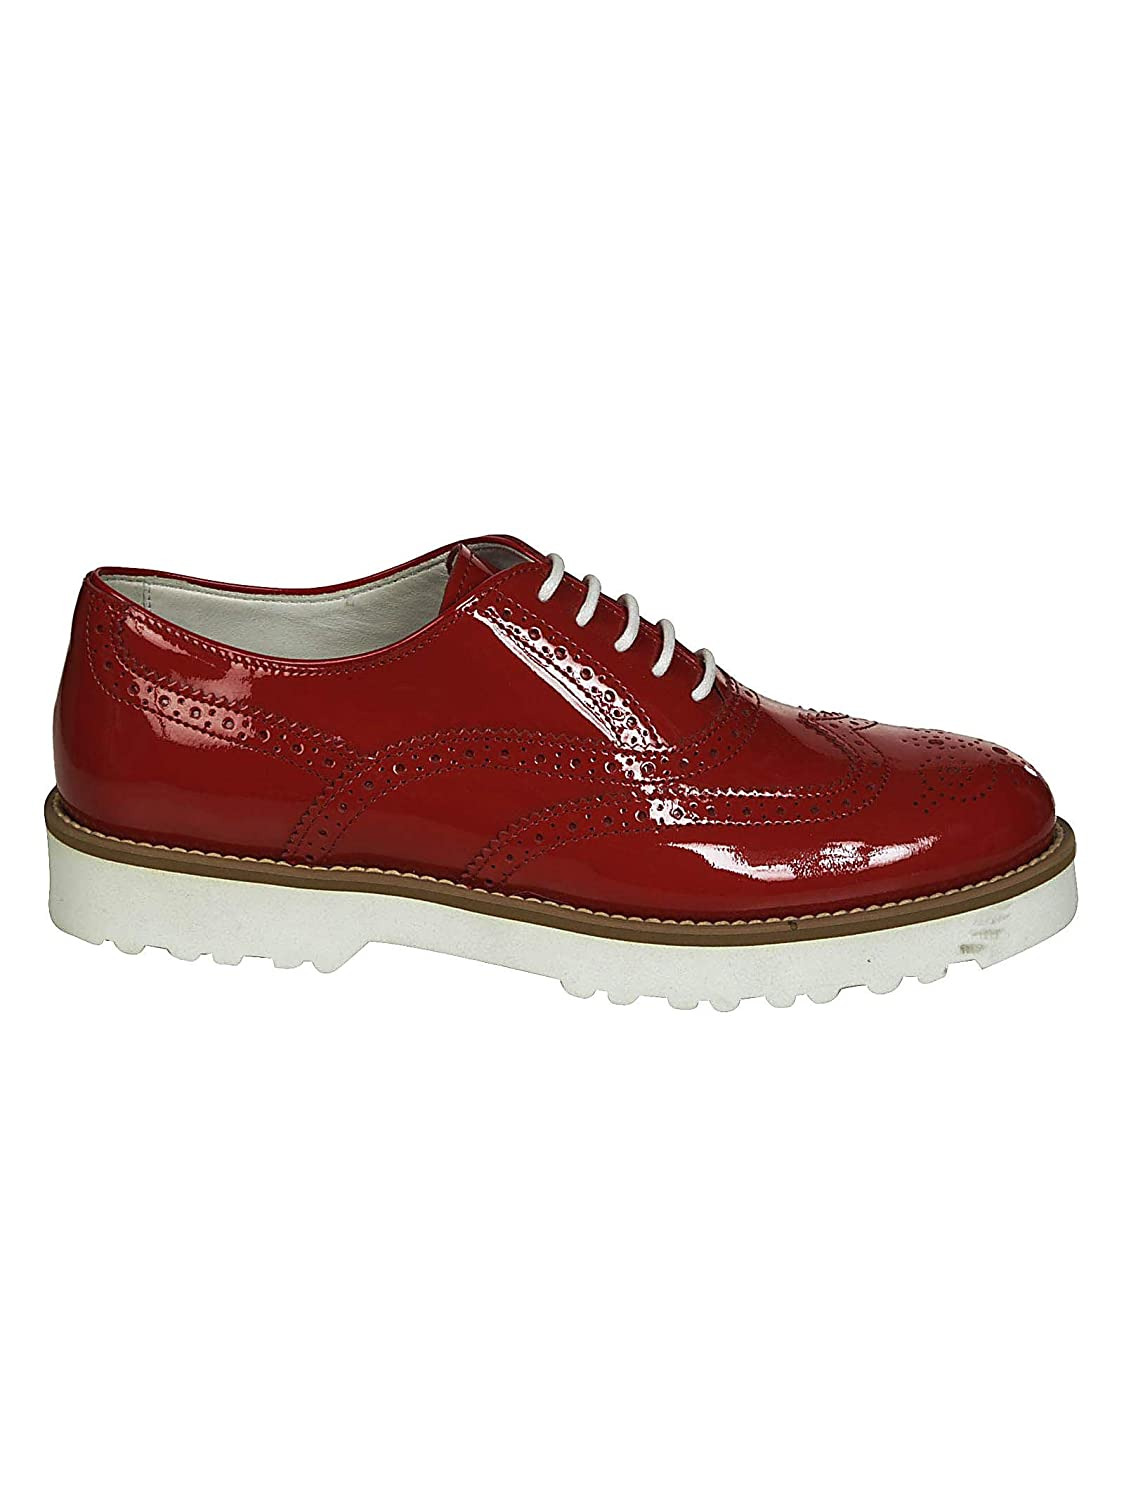 Hogan Femme HXW2590R3200W0R001 Rouge Cuir 3037 Chaussures Cuir À HXW2590R3200W0R001 Lacets - 4a9c8c5 - automatisms.space